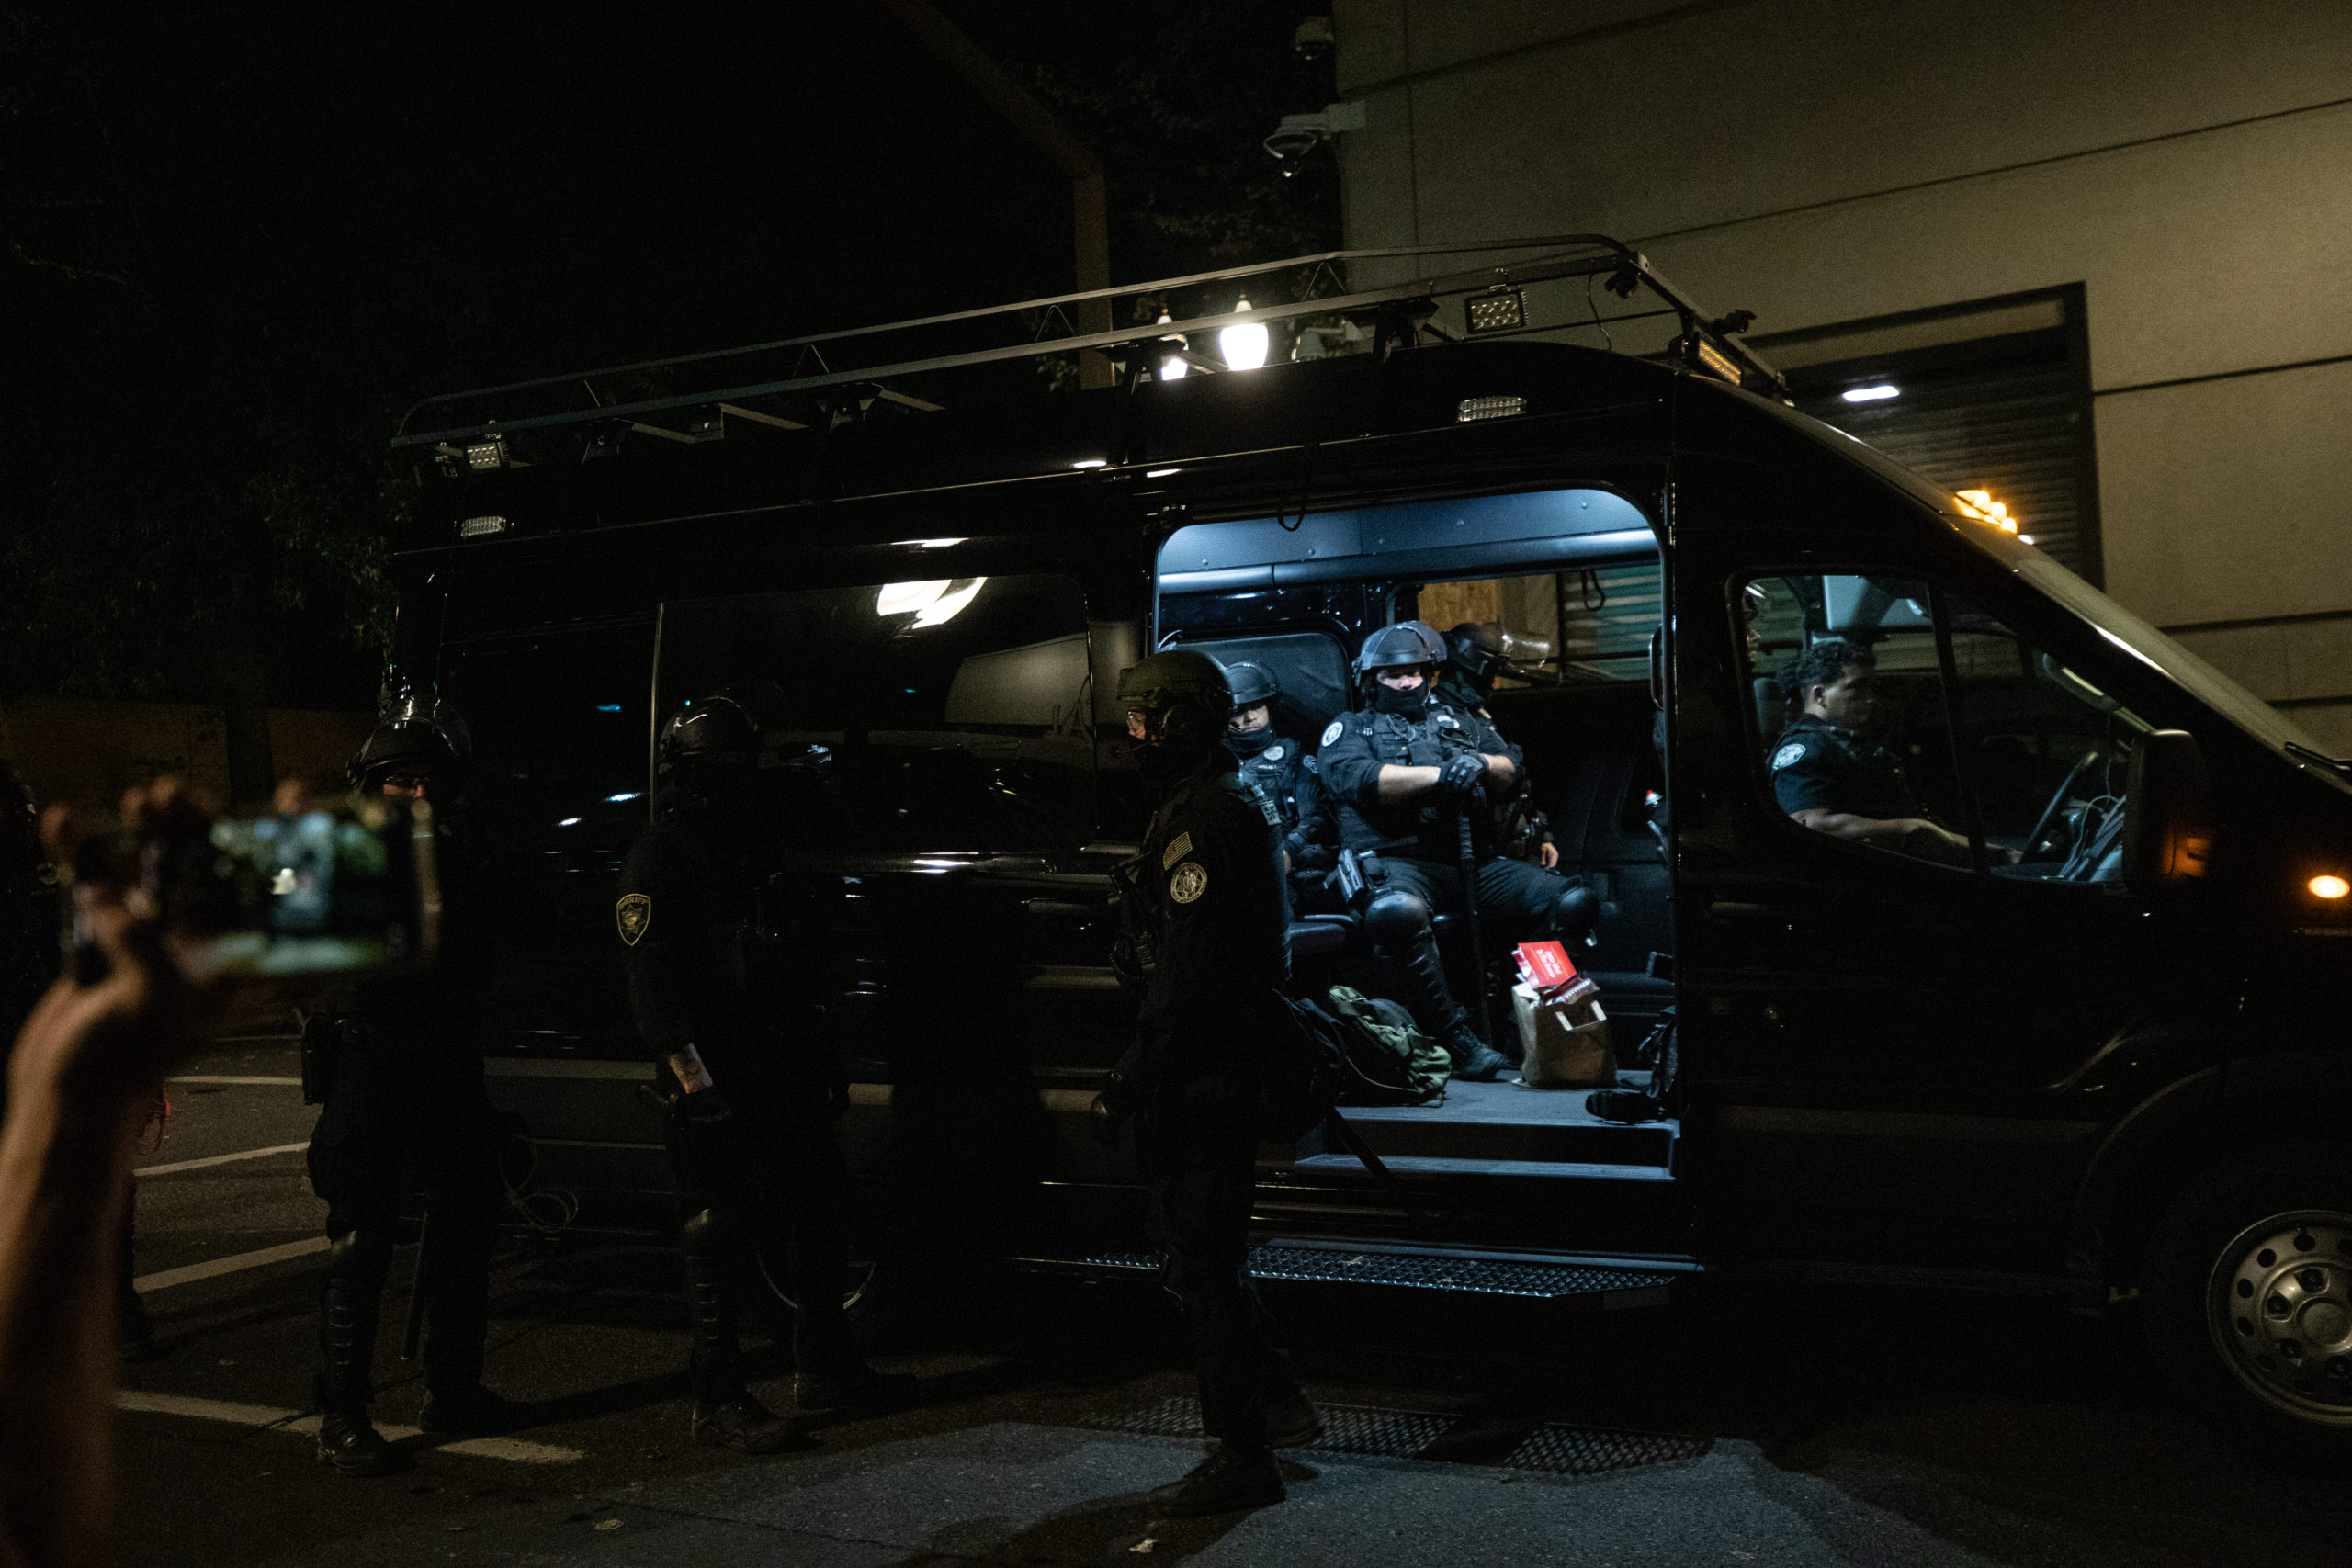 Police gather into an unmarked van outside of the Portland Police Bureau in Portland, Oregon, on Sept. 27, 2020. (Photo: Kaylee Greenlee / DCNF)